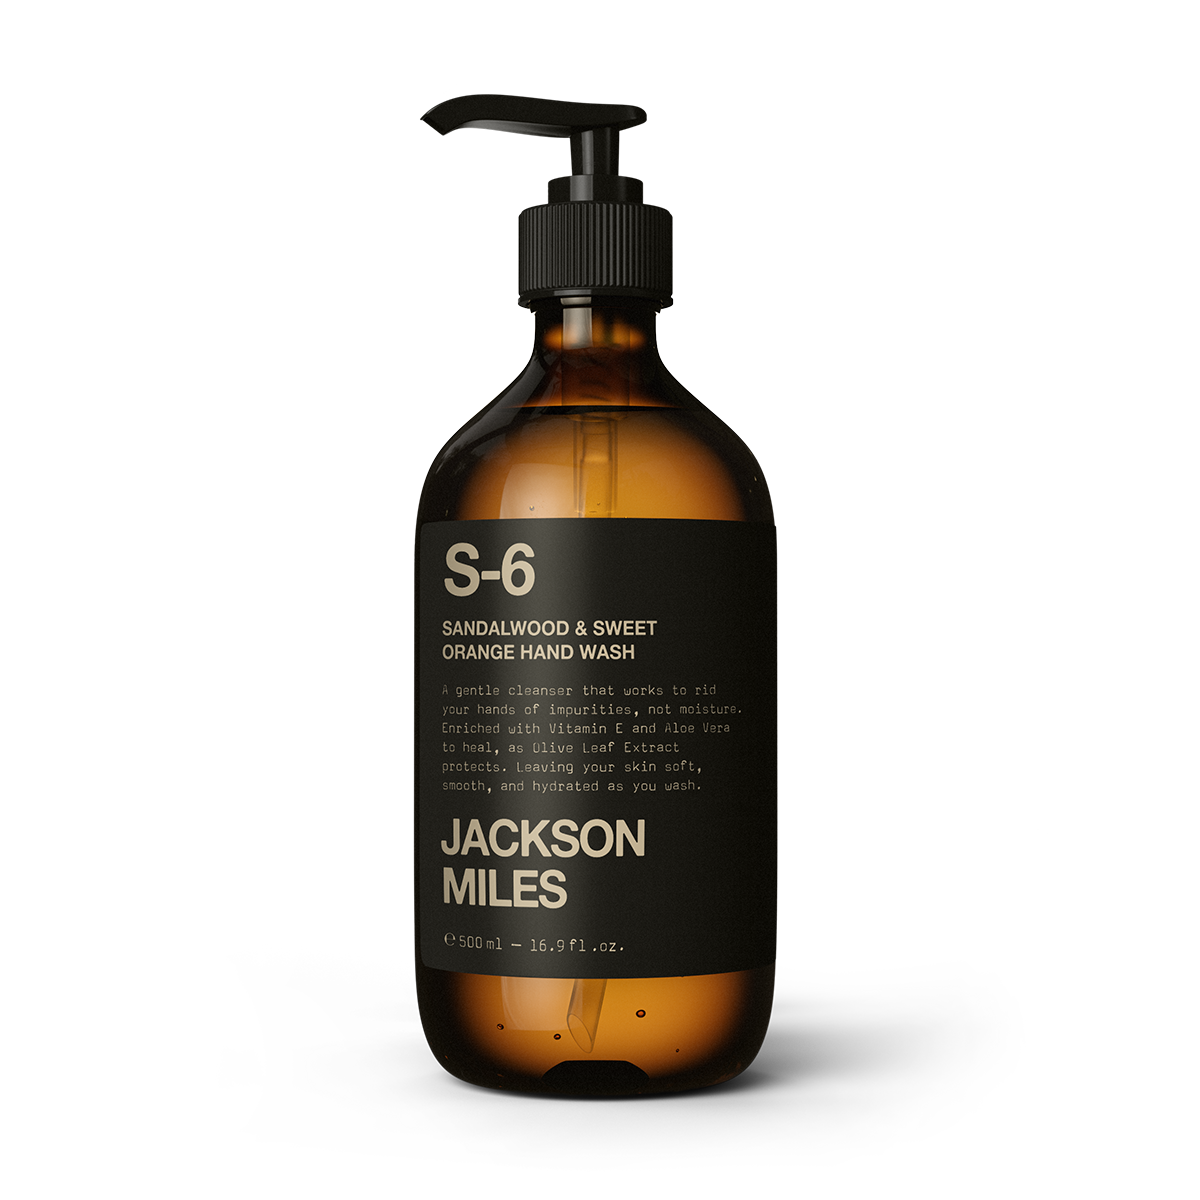 S-6 Sandalwood & Sweet Orange Hand Wash